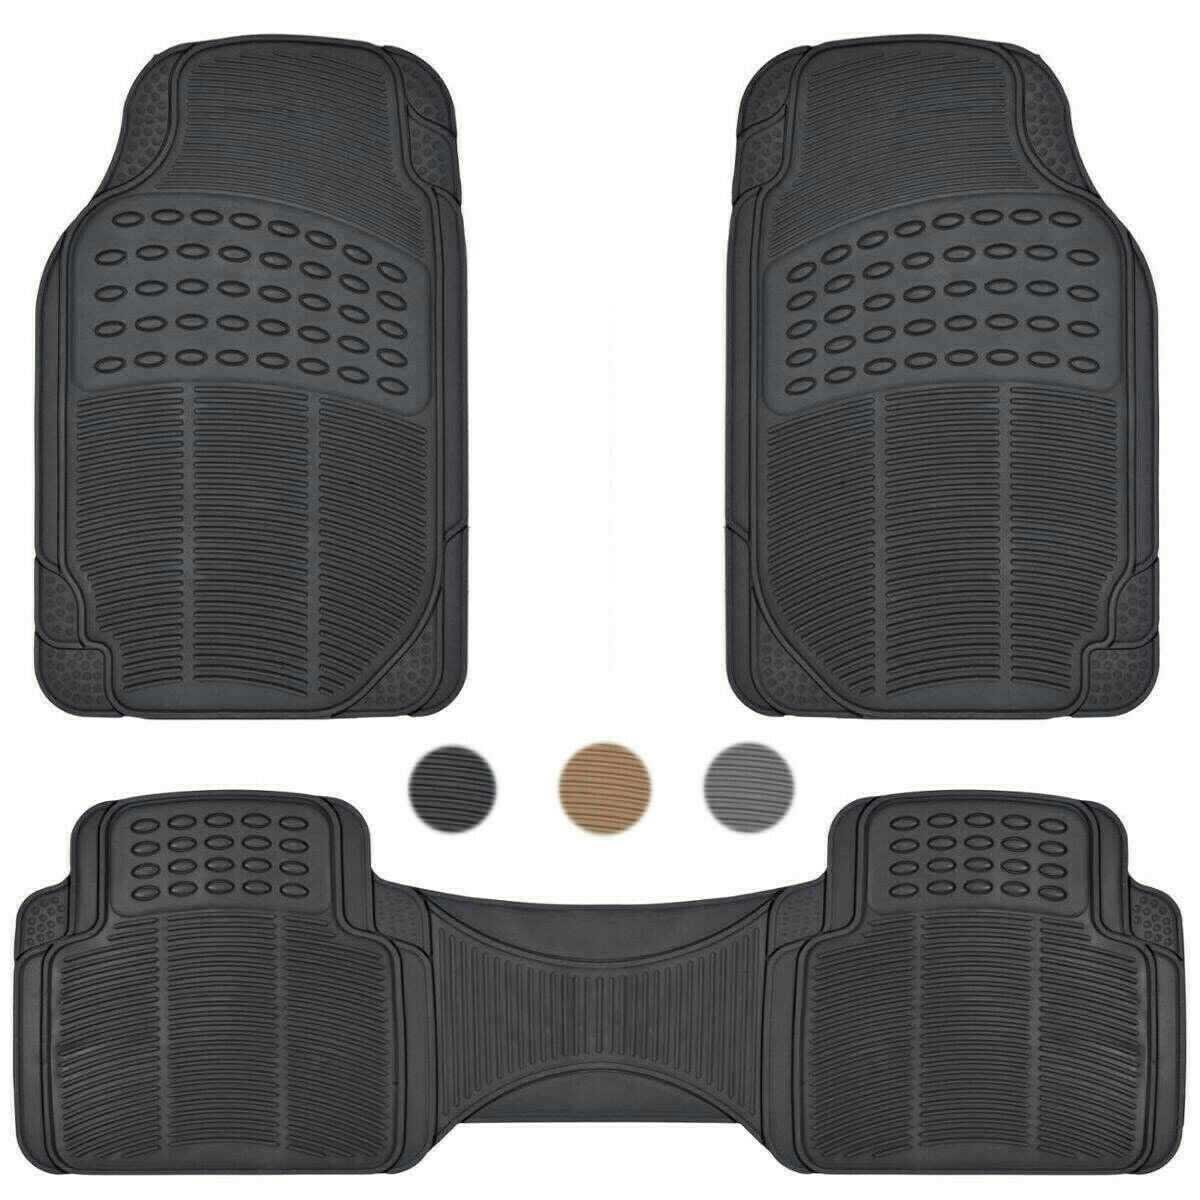 Details about Car Floor Mats for All Weather Rubber Heavy